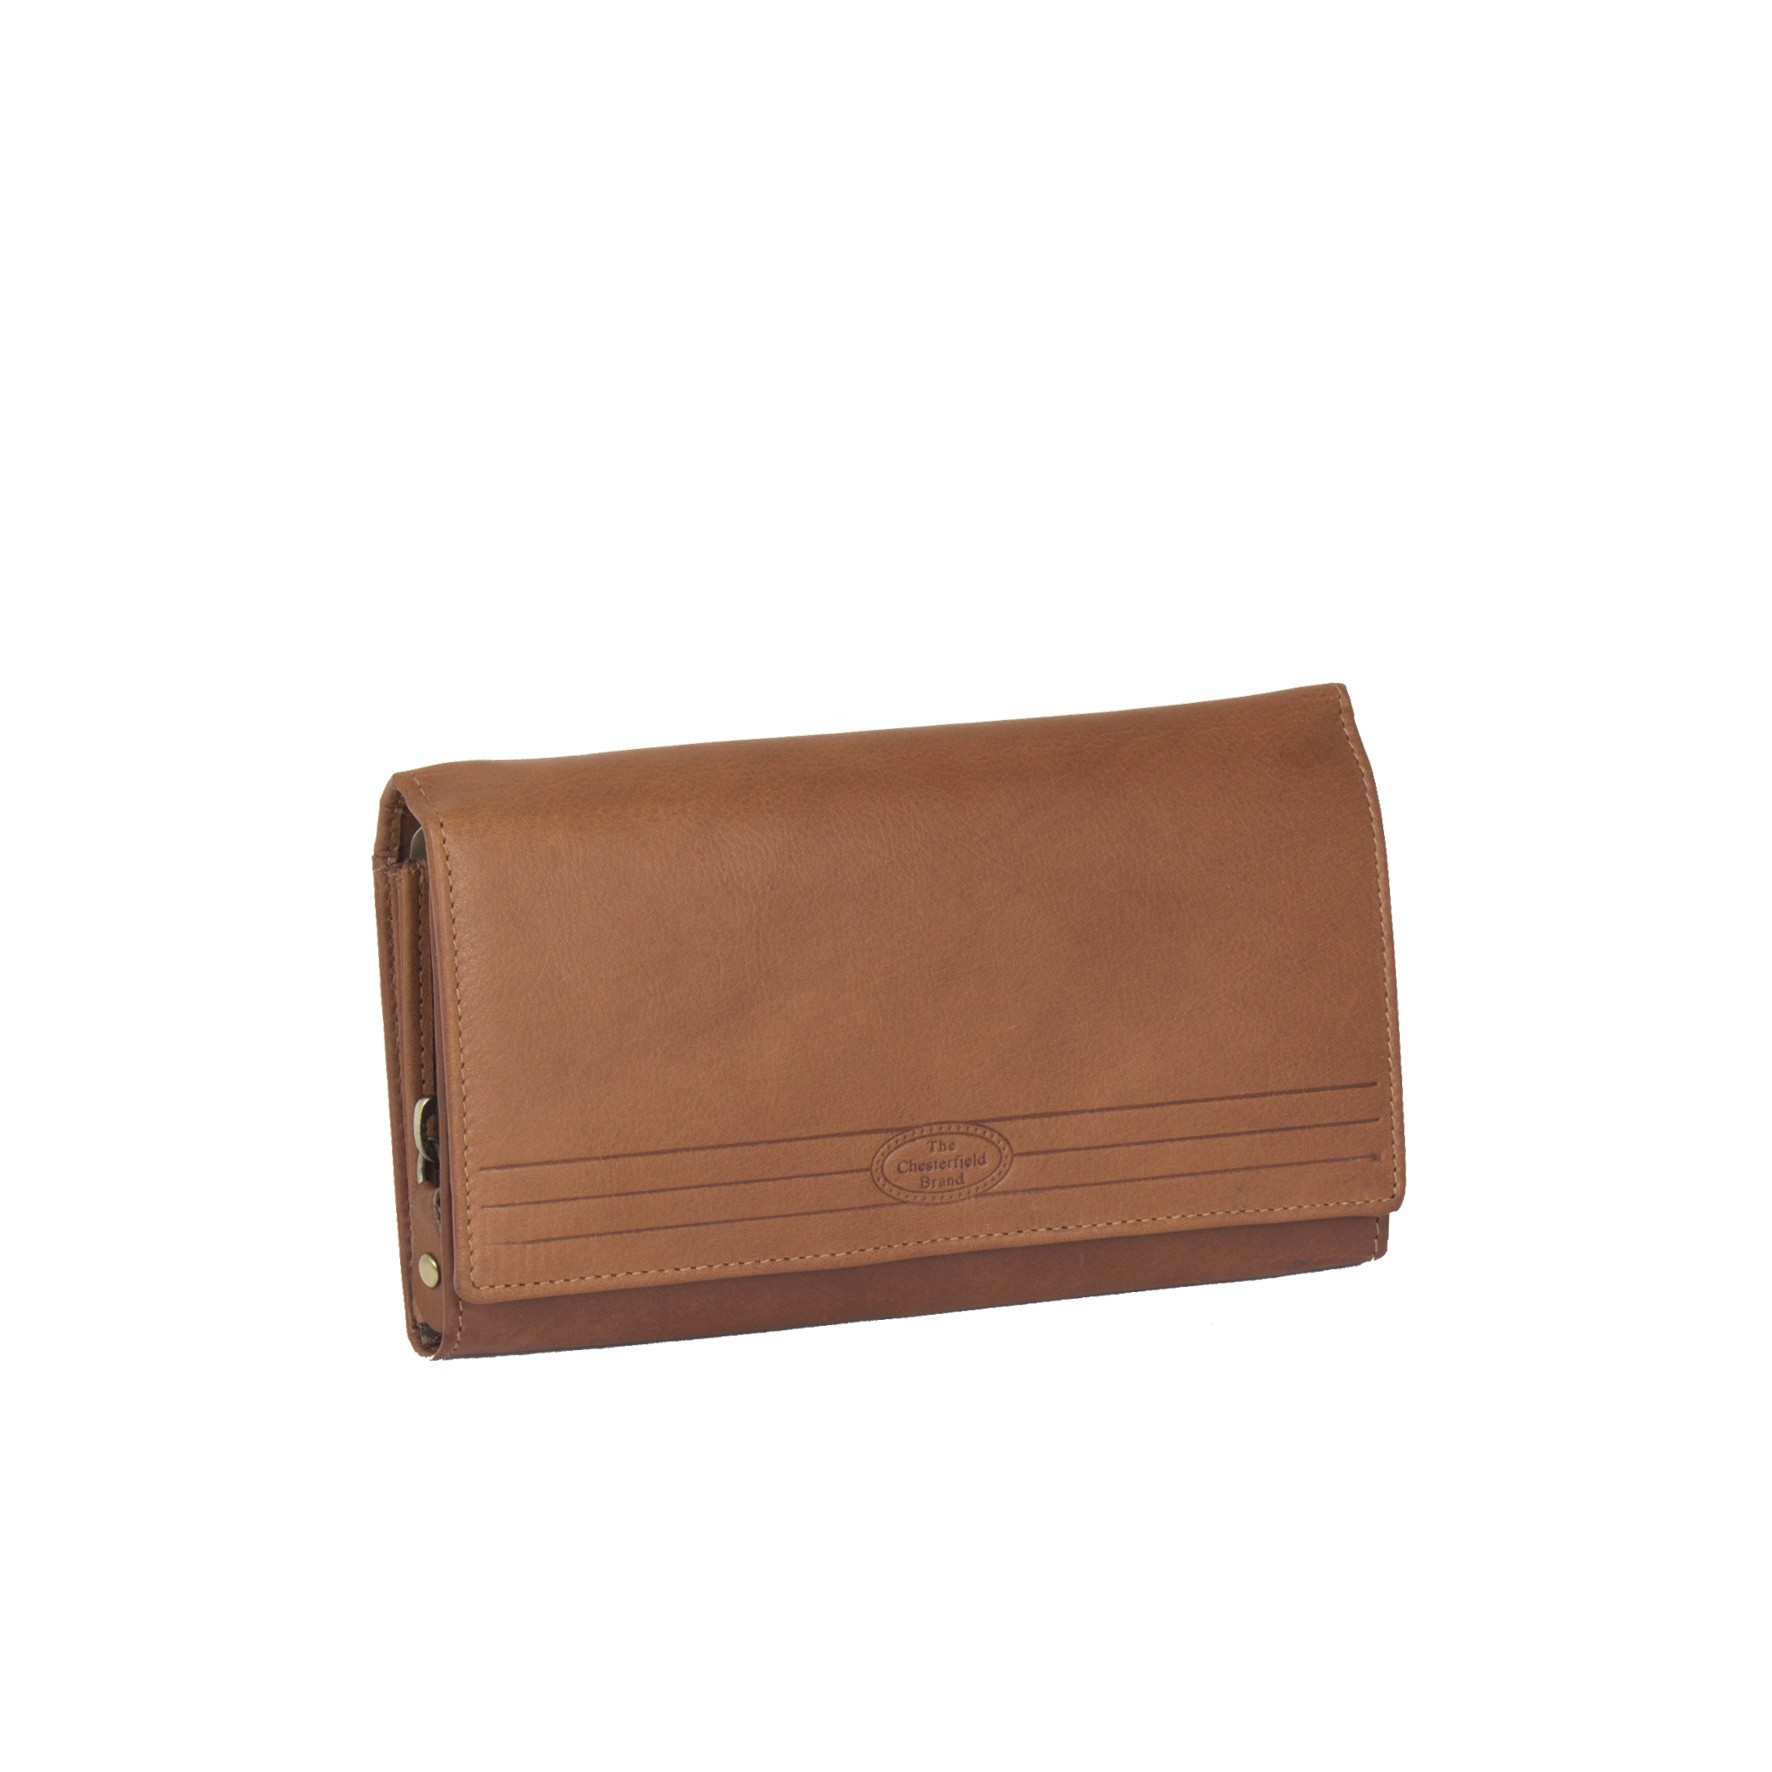 Chesterfield Ladies Wallet 'Mirthe' C08.0178 Cognac